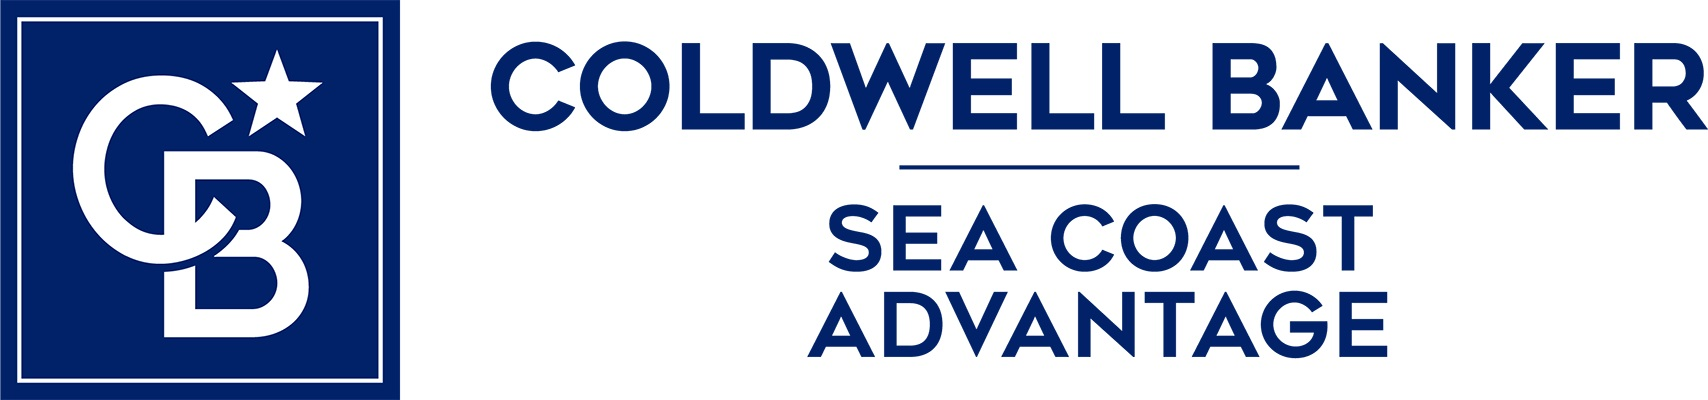 Emily Willetts - Coldwell Banker Sea Coast Advantage Realty